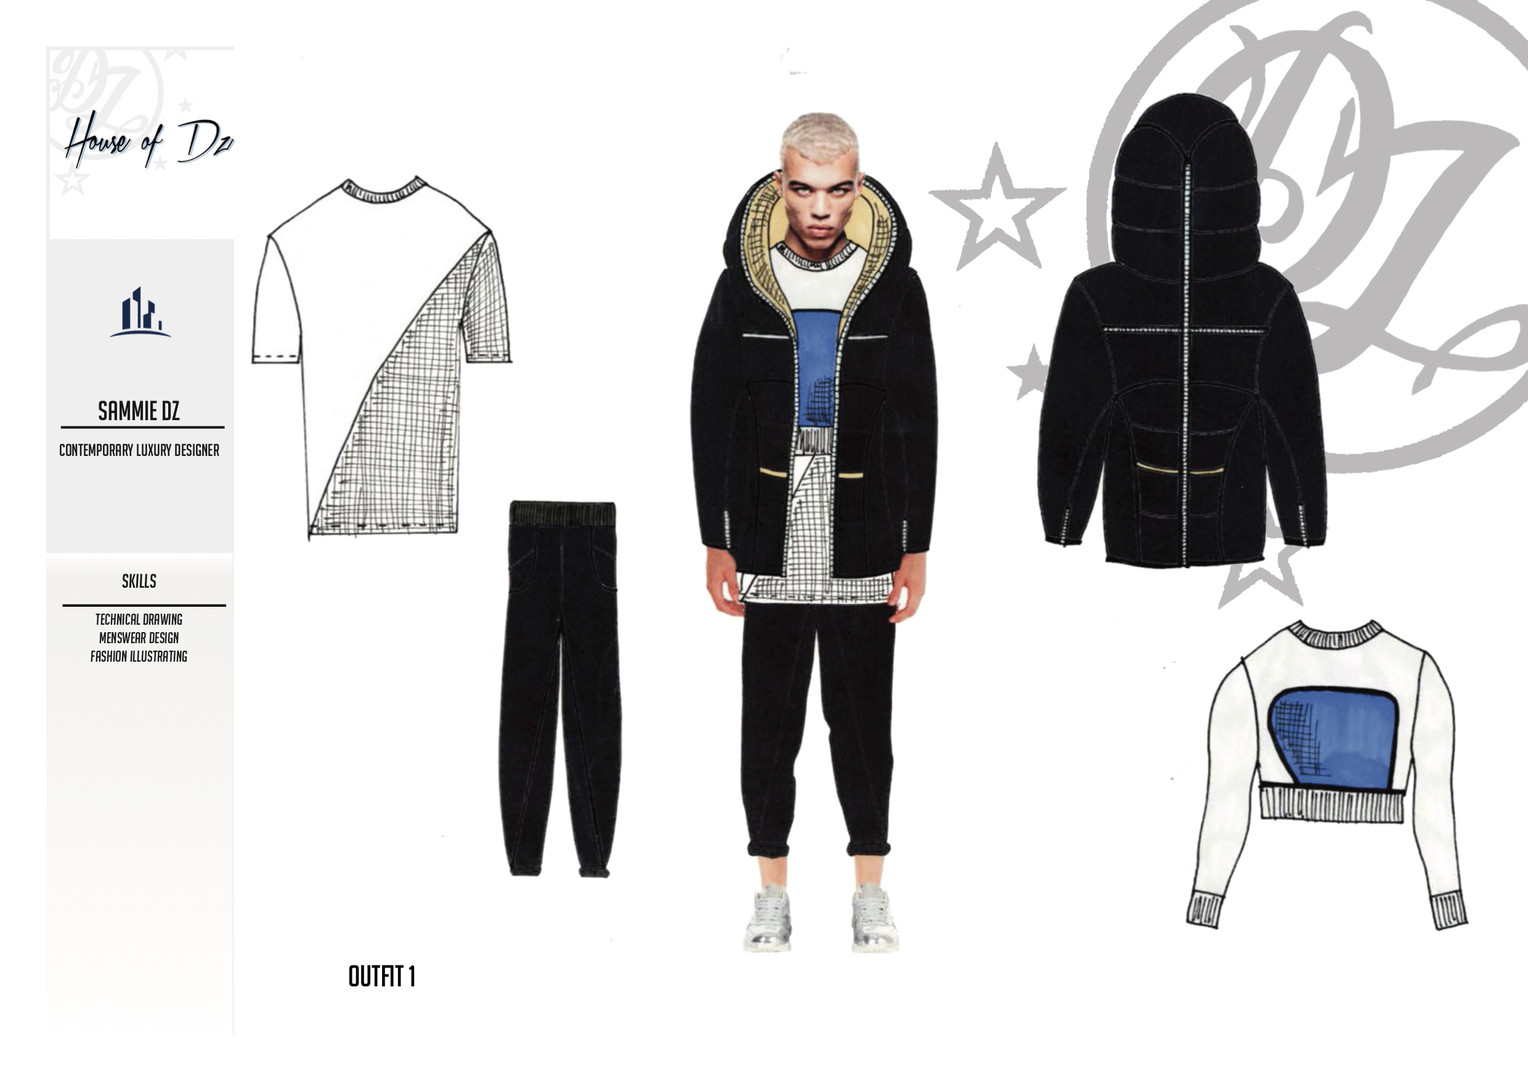 Life in the city - Outfit 1